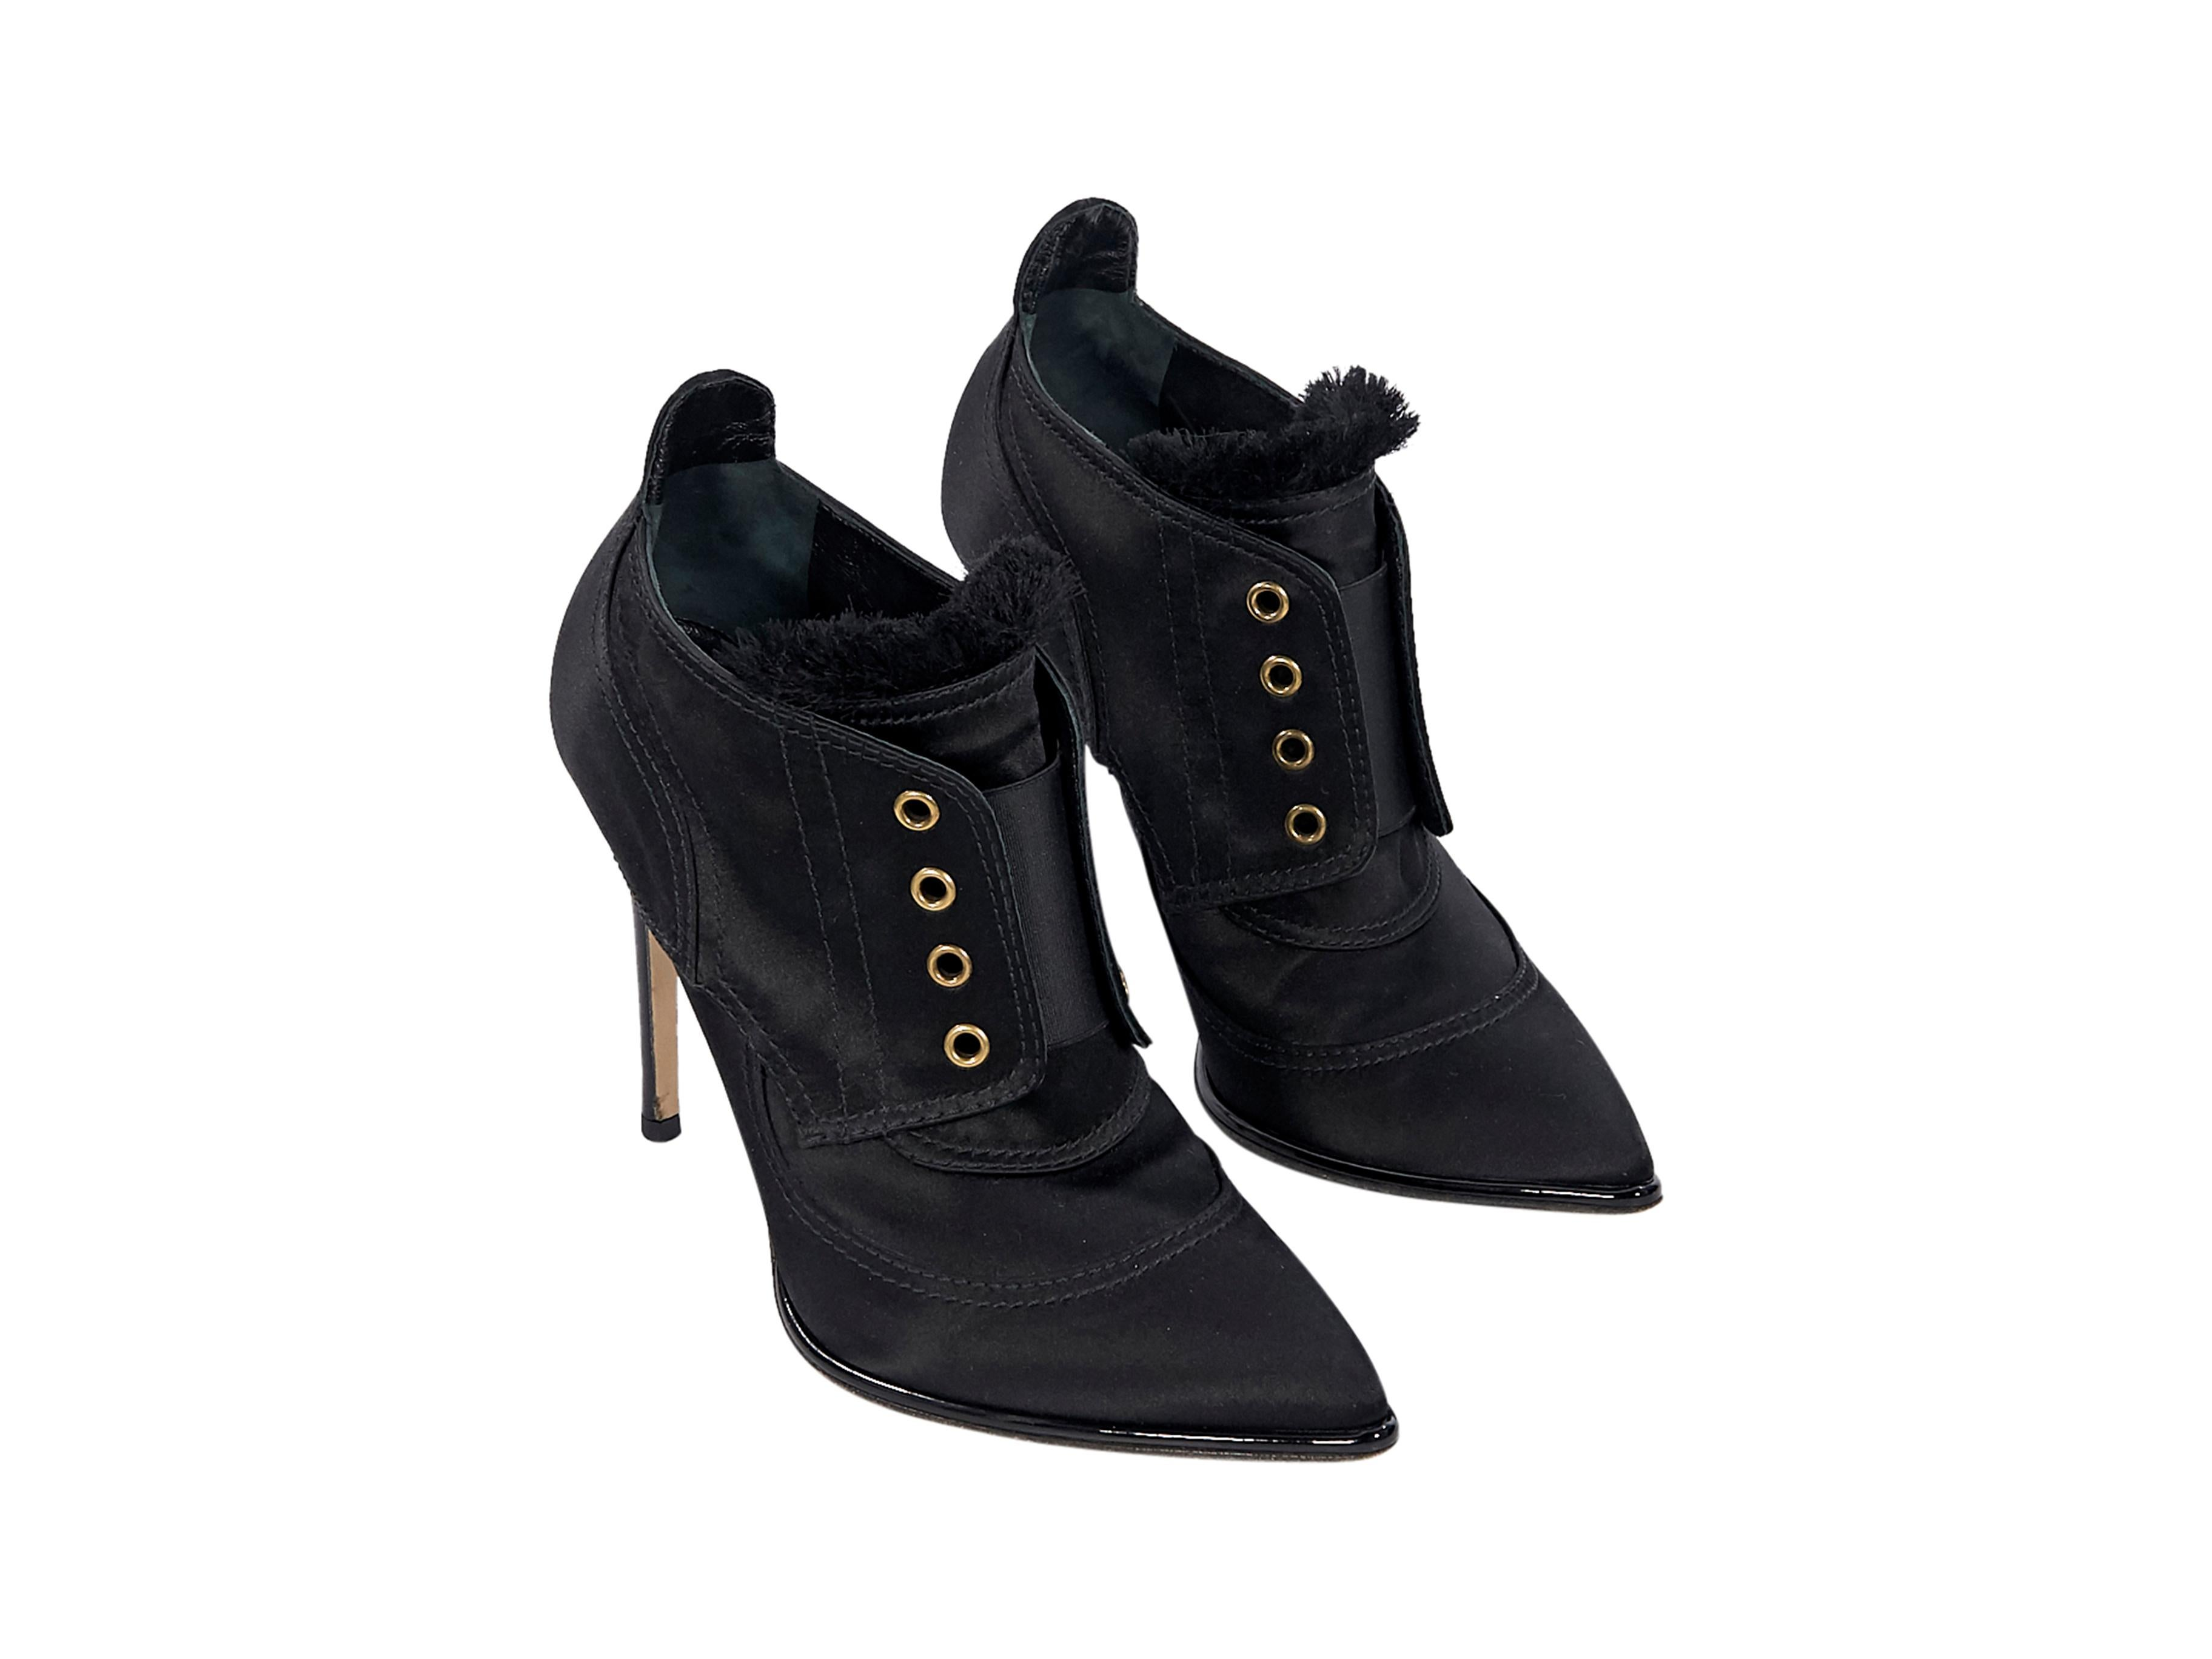 e1f9a47225a1d Black Jimmy Choo Satin Ankle Boots For Sale at 1stdibs